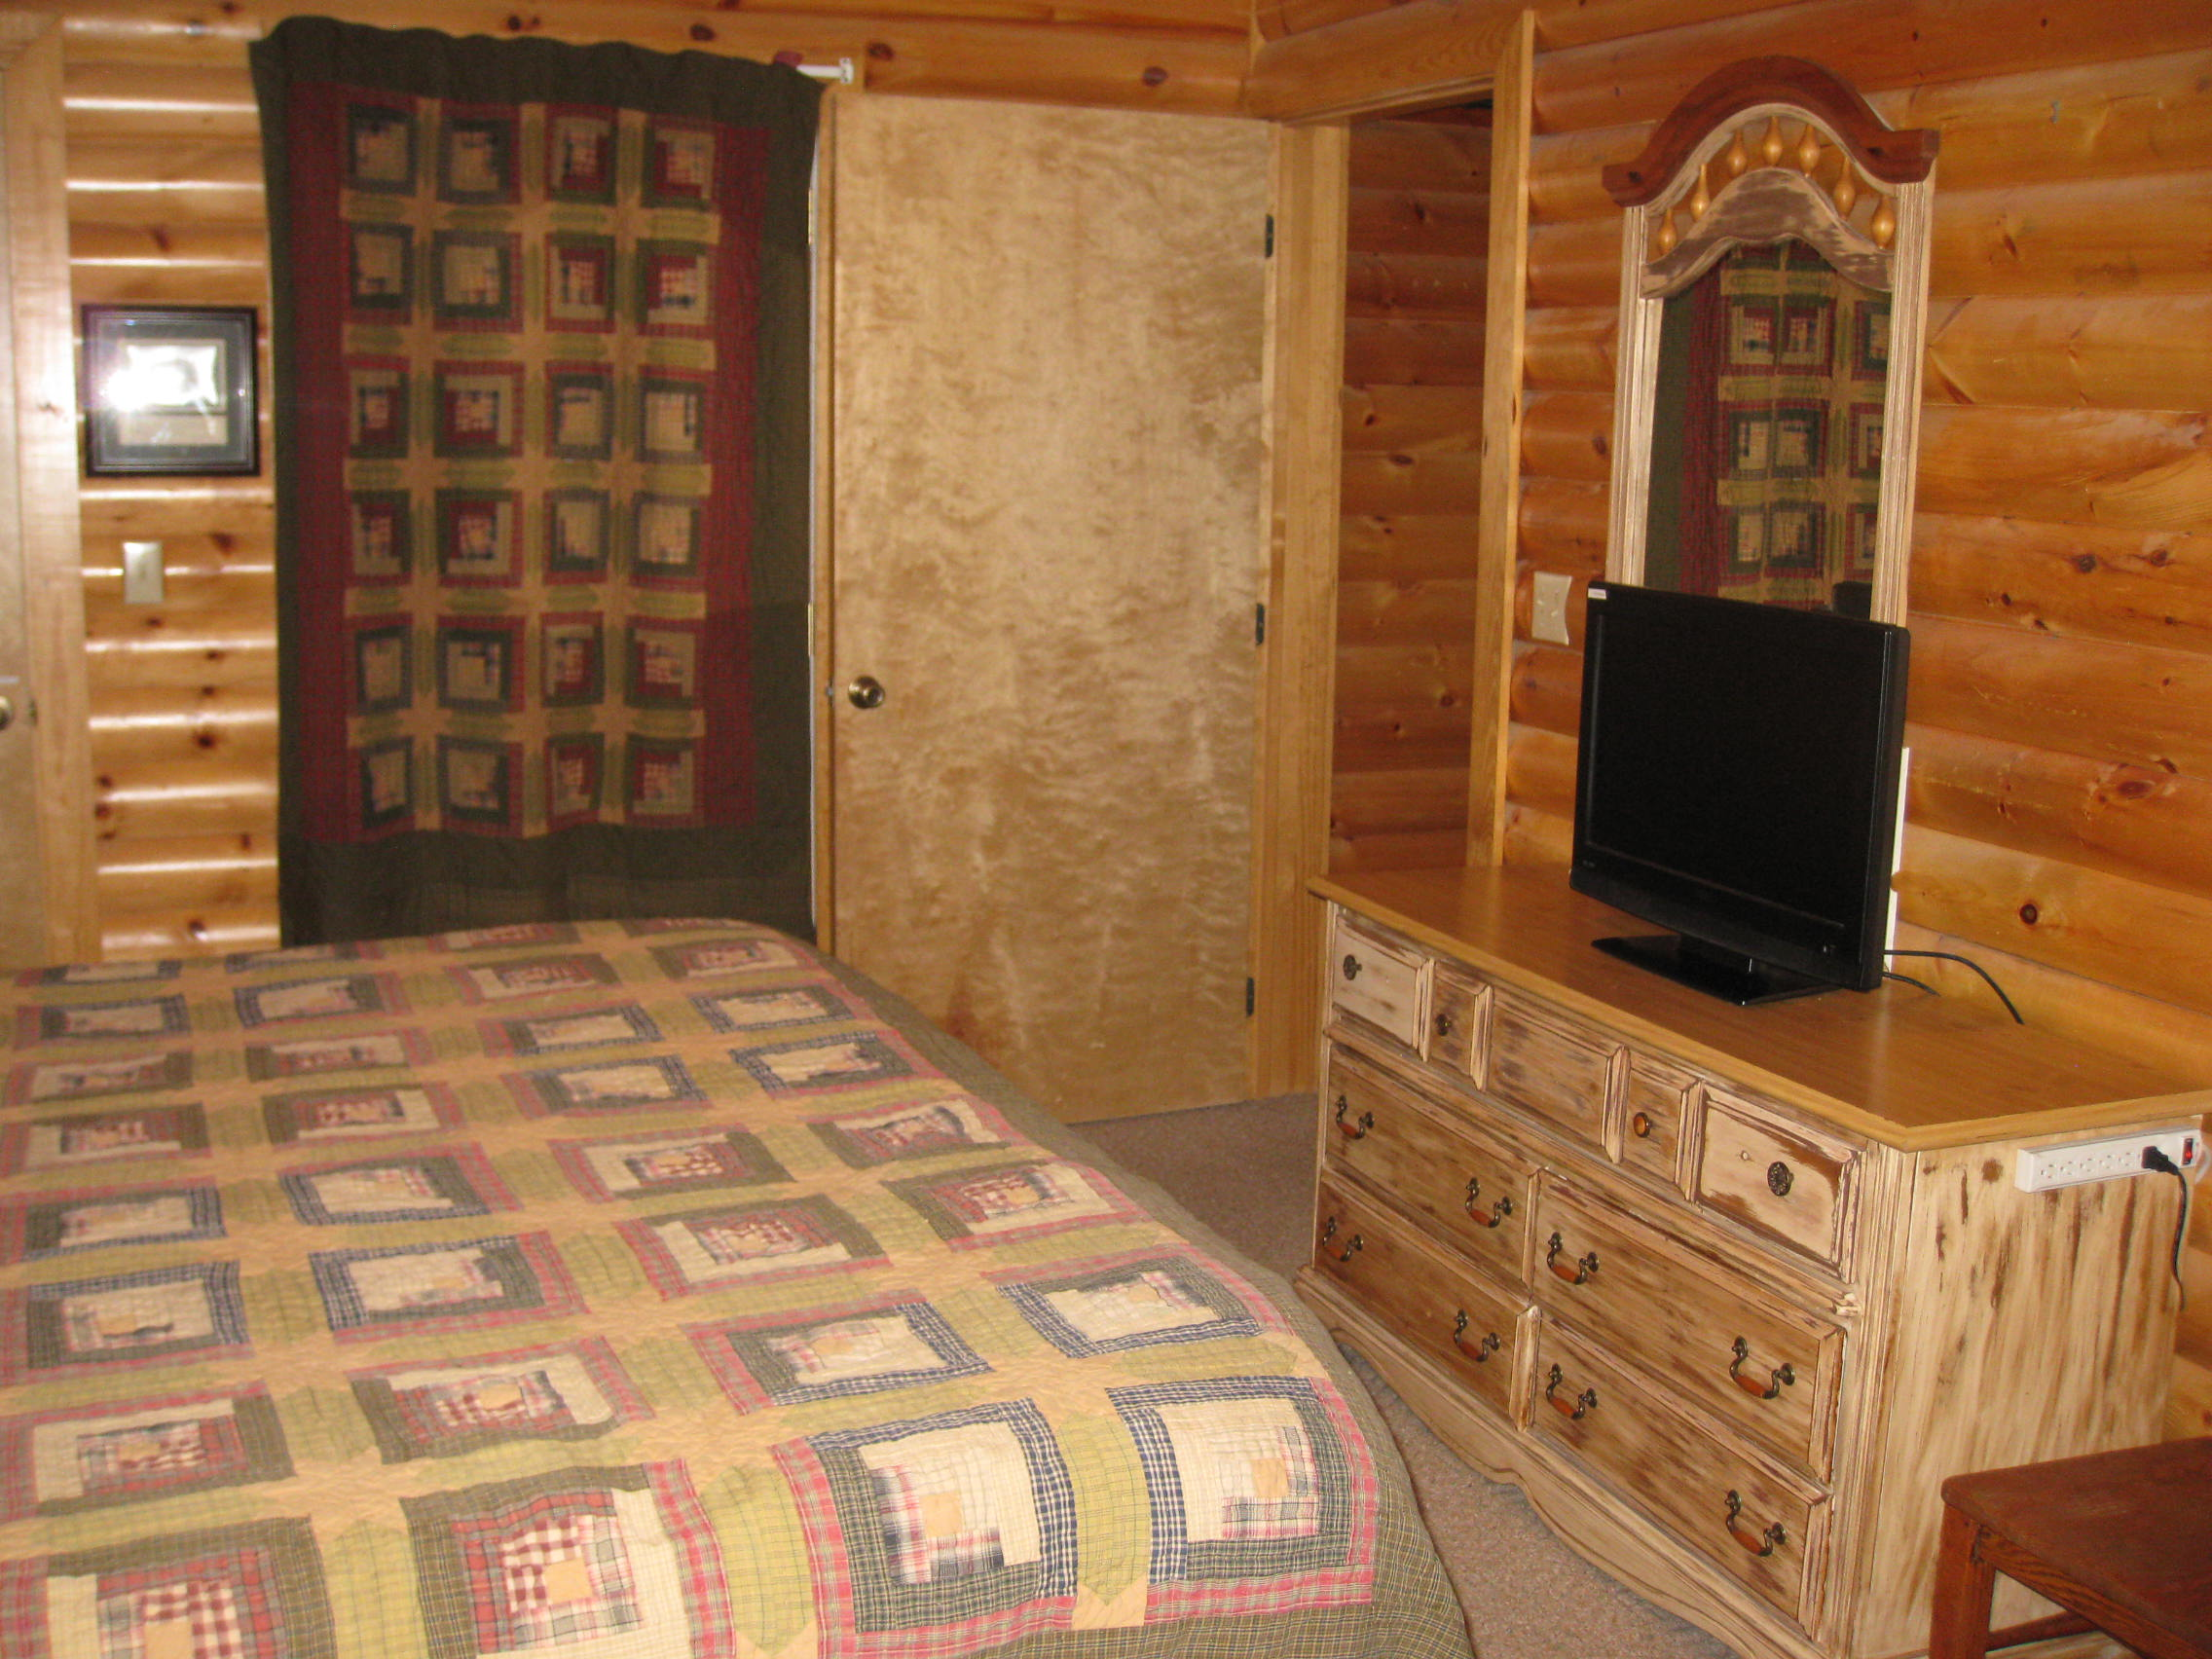 mo hotels cabin rent id accommodations in two cabins getimage bedroom resort missouri westgate branson woods resorts for interior